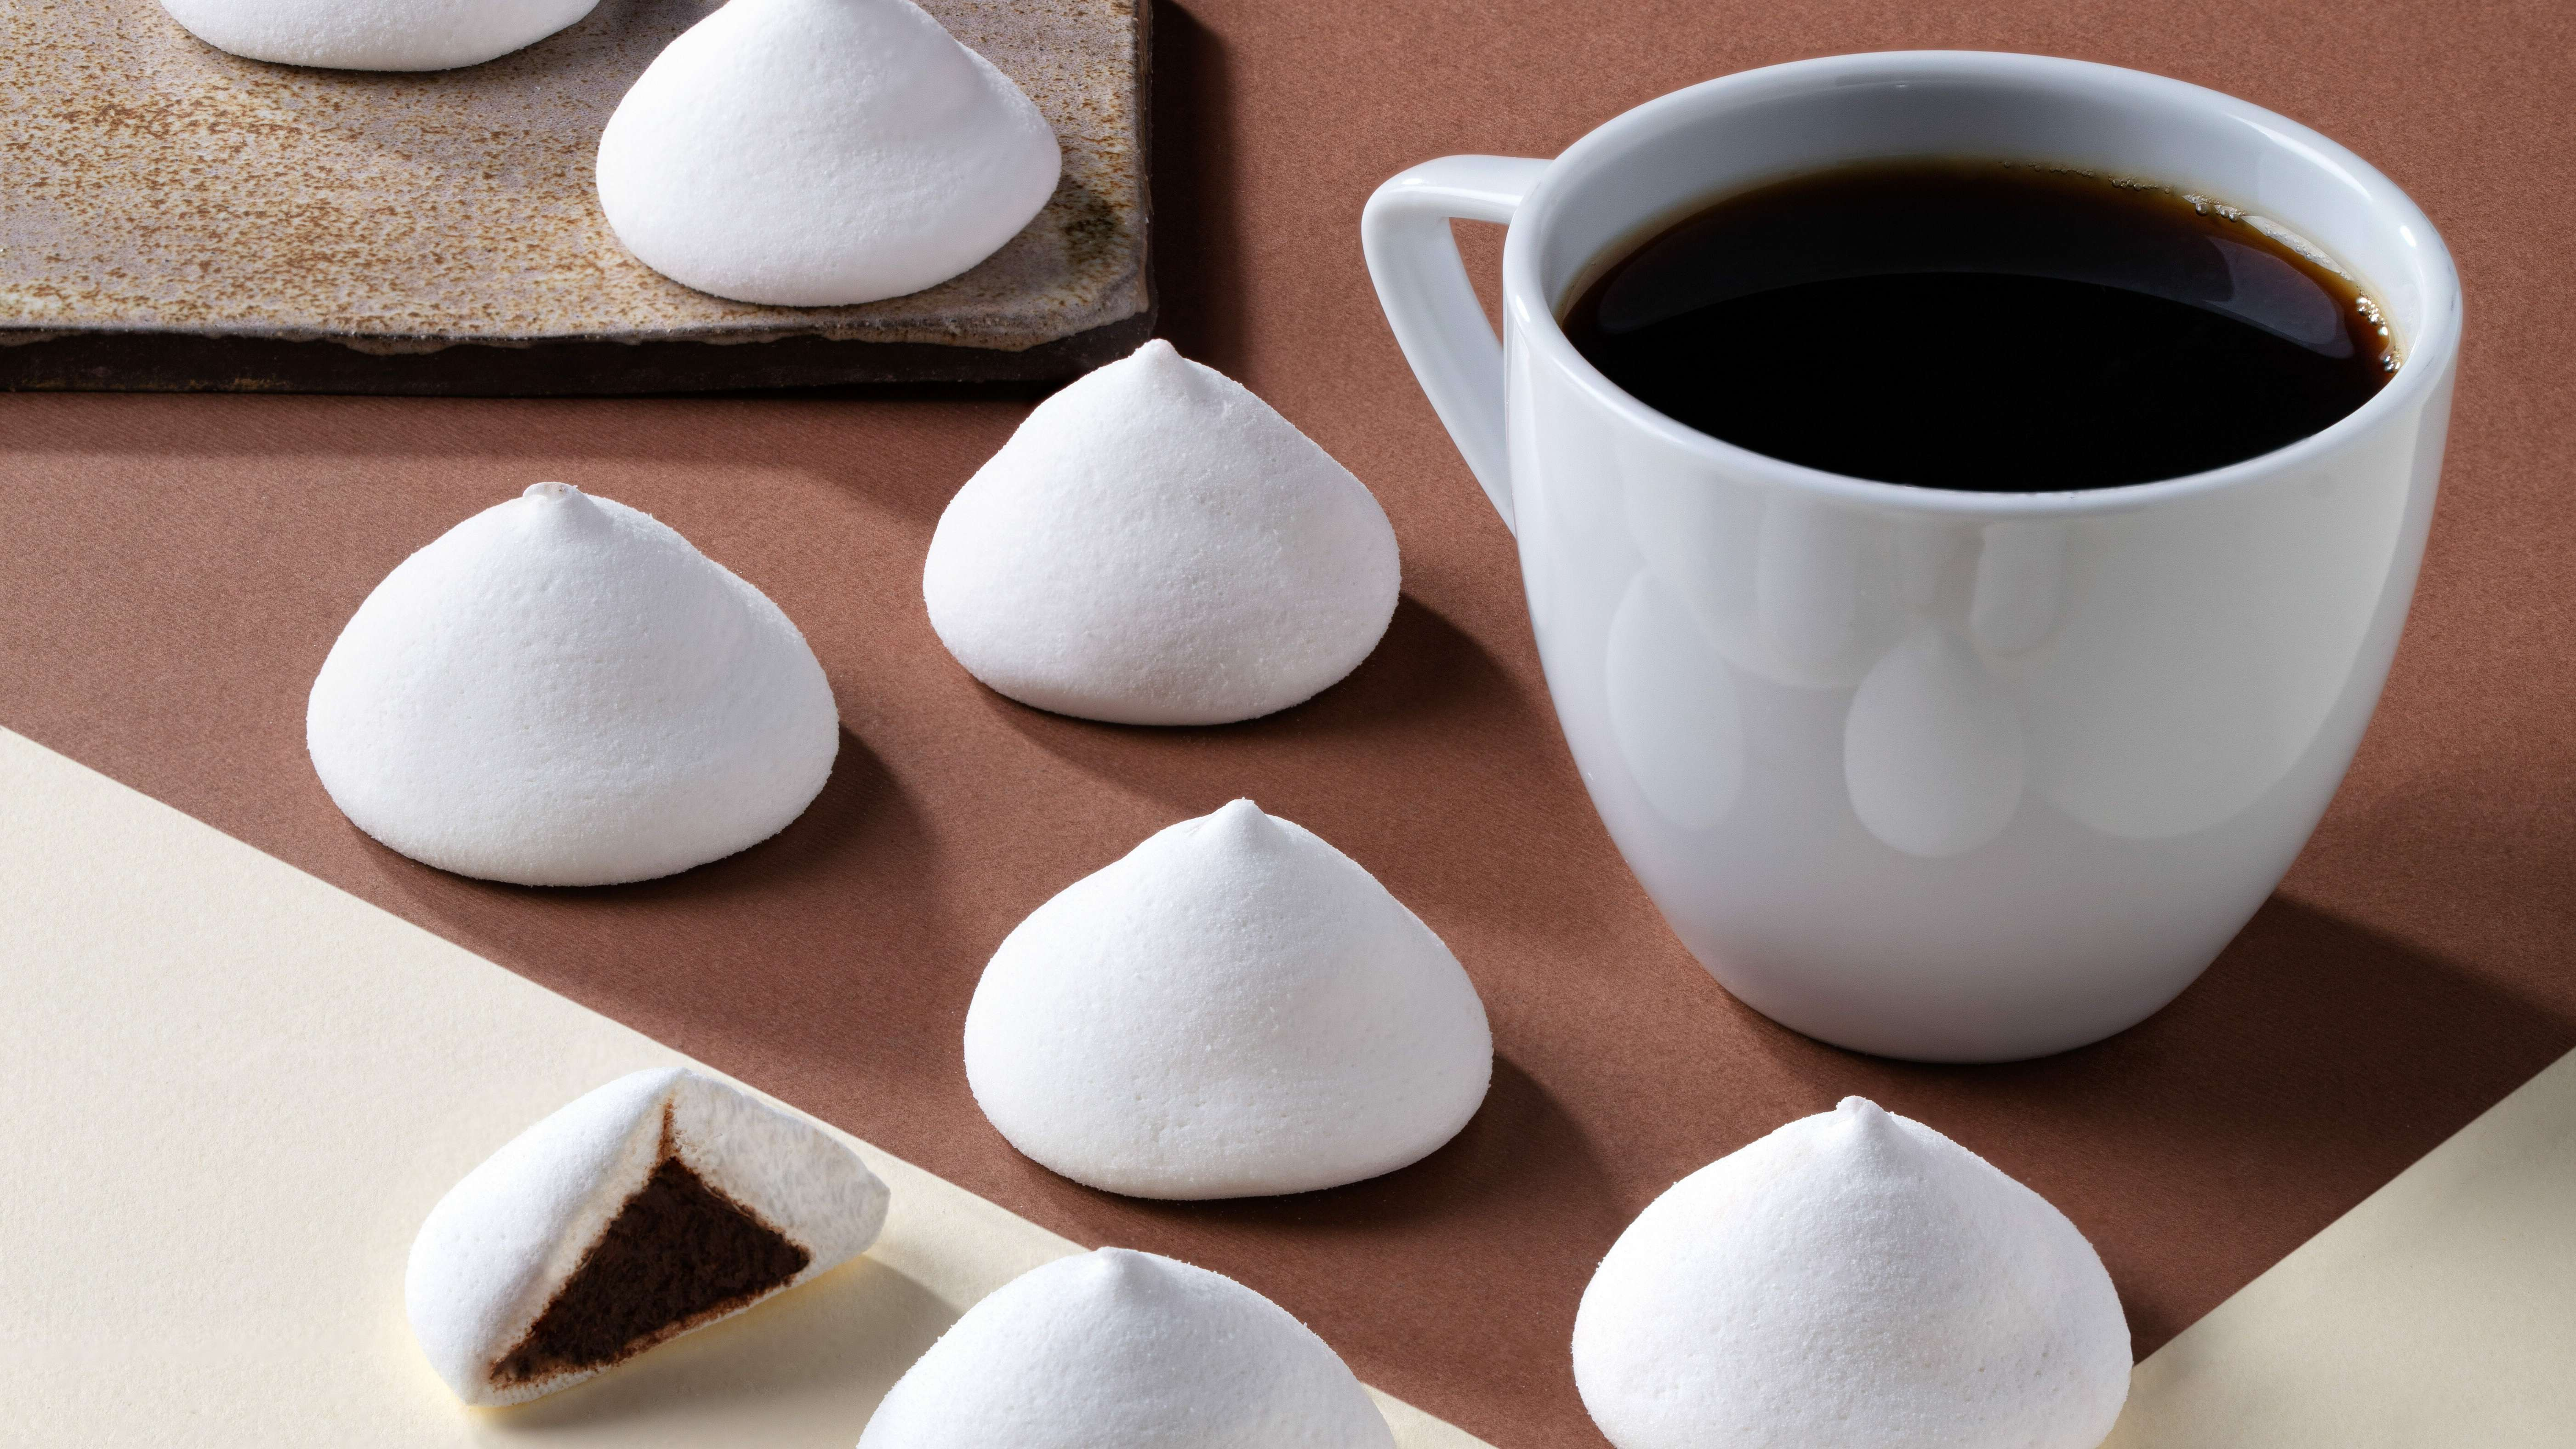 Chamallows with Coffee (Production, 16:9)